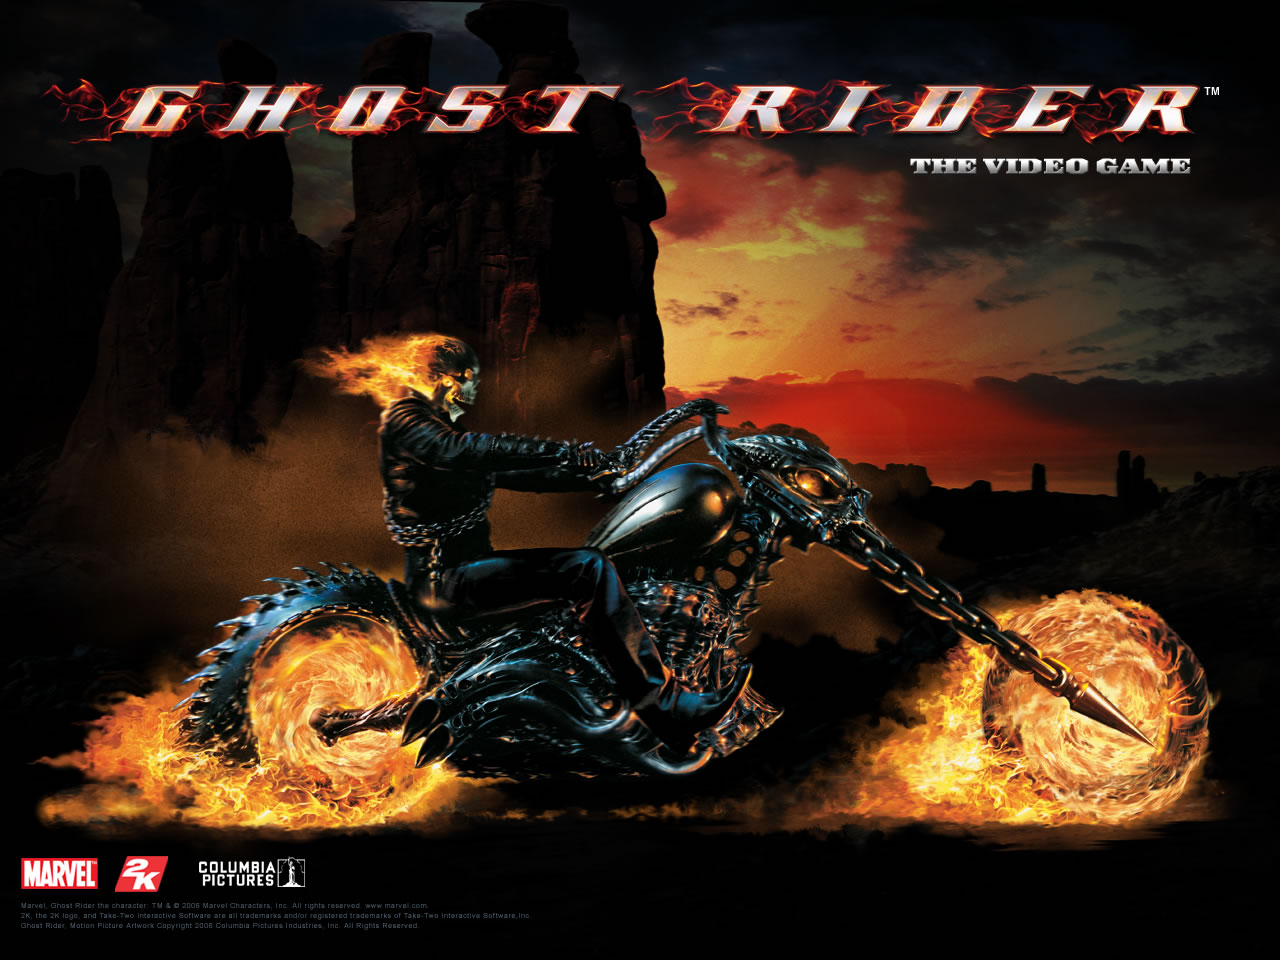 Stunt Rider  Ghost Rider Wallpaper Gallery   Best Game Wallpapers 1280x960